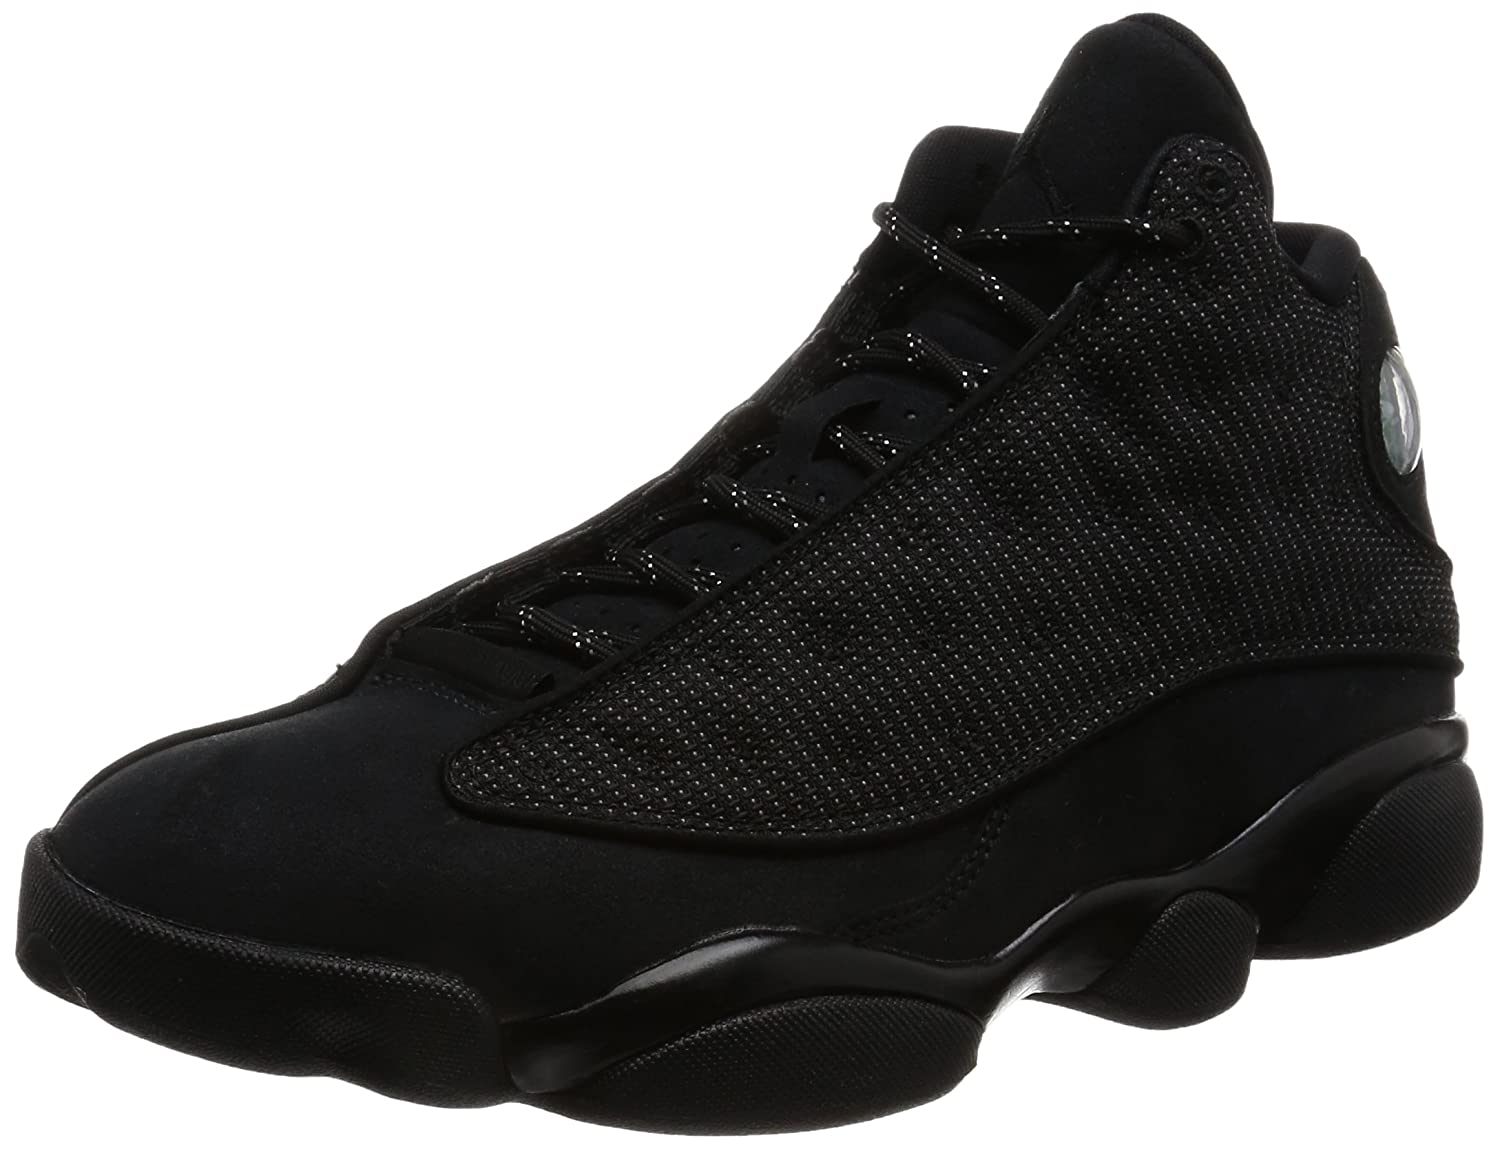 a53eda44d65f Nike AIR Jordan 13 Retro  Black CAT  - 414571-011  Jordan  Amazon.ca  Shoes    Handbags